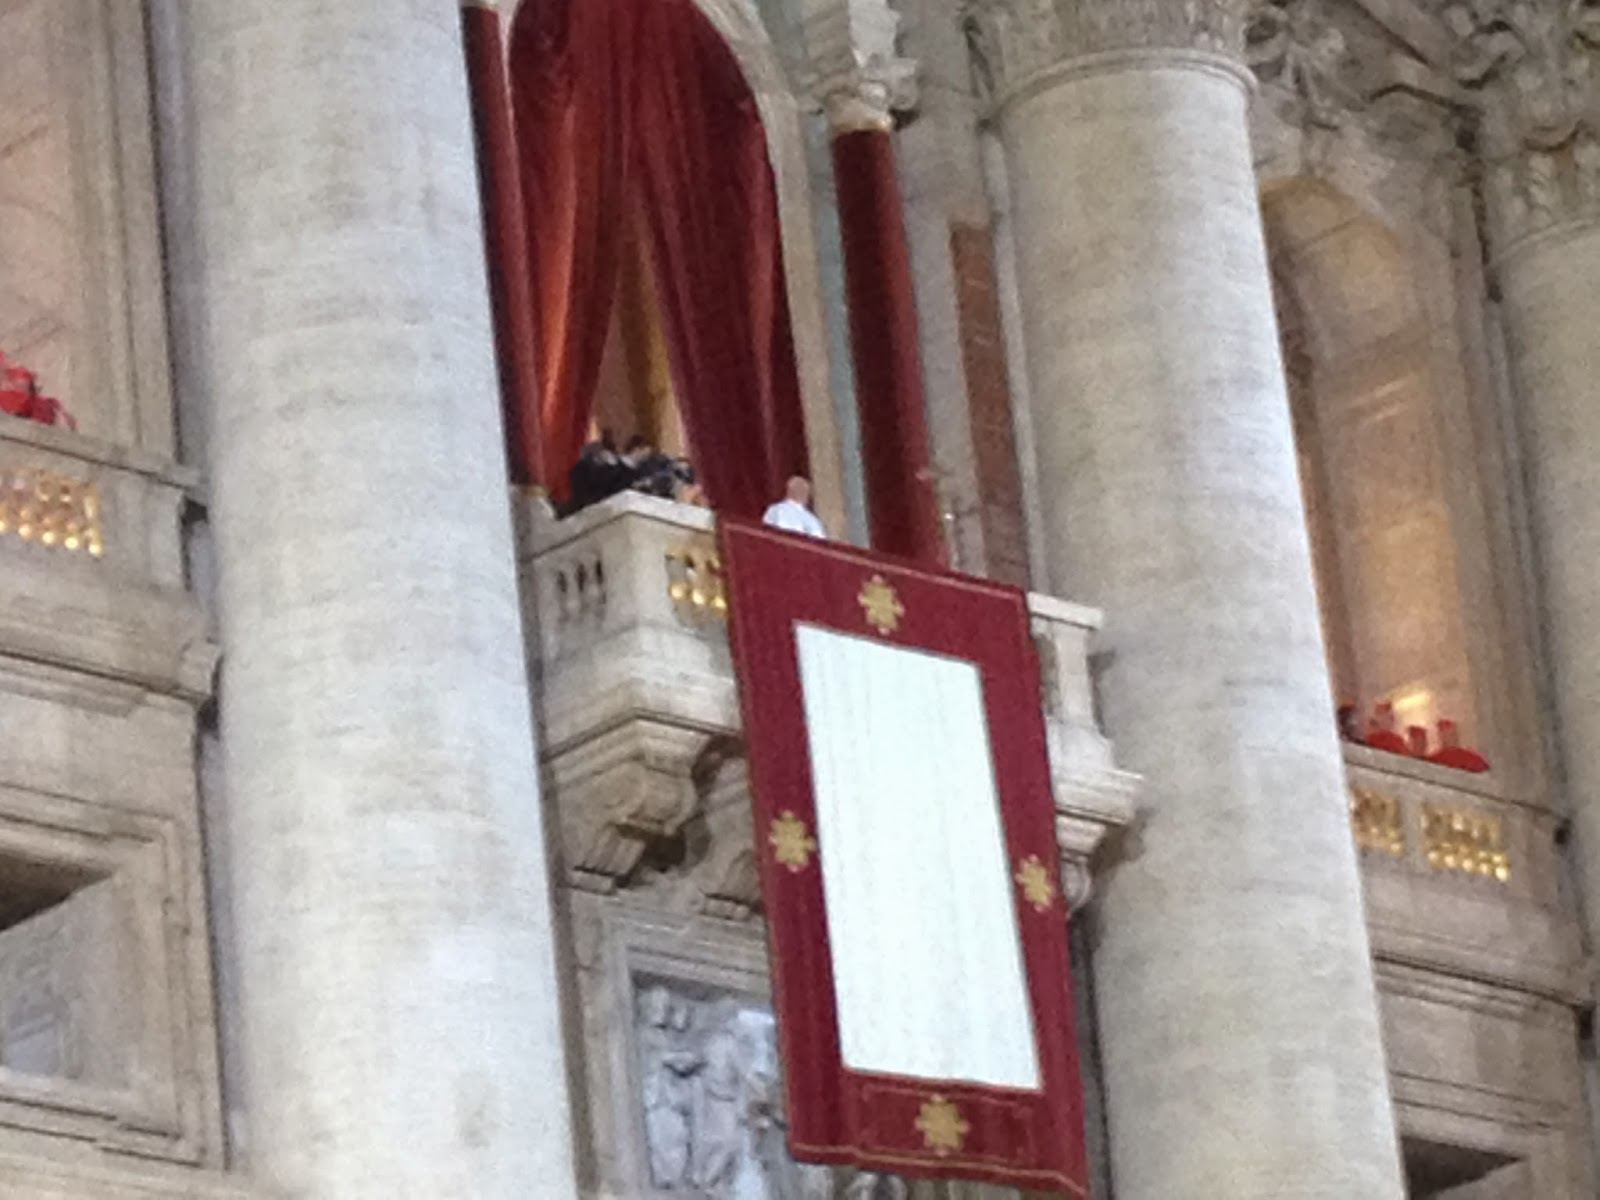 Pope Francis's first appearance, Benediction Loggia, St. Peter's Basilica. © Tiffany Parks